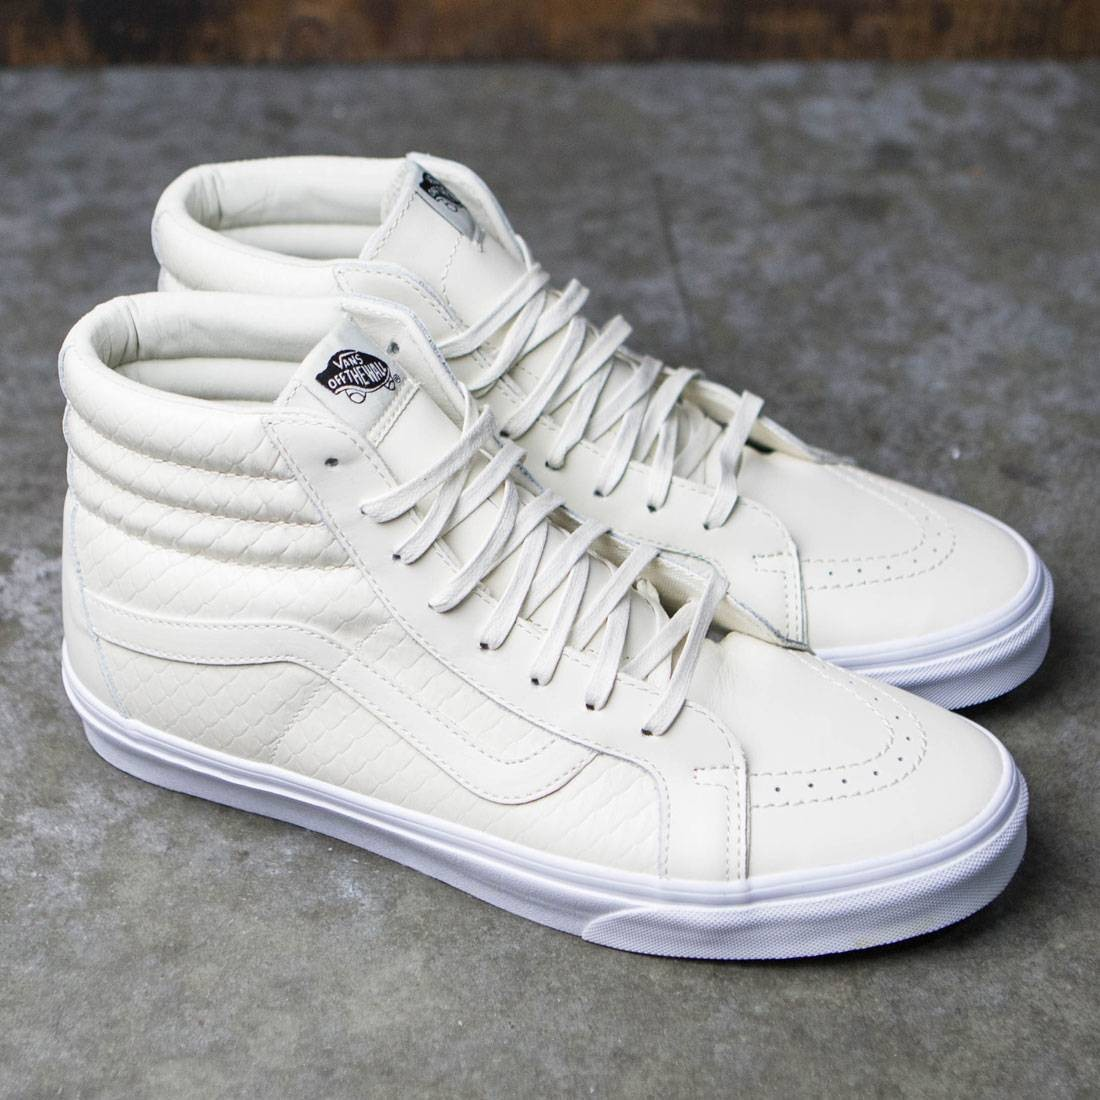 1c4230ac7b17 Vans Men Sk8-Hi Reissue DX - Armor Leather (white / turtledove)